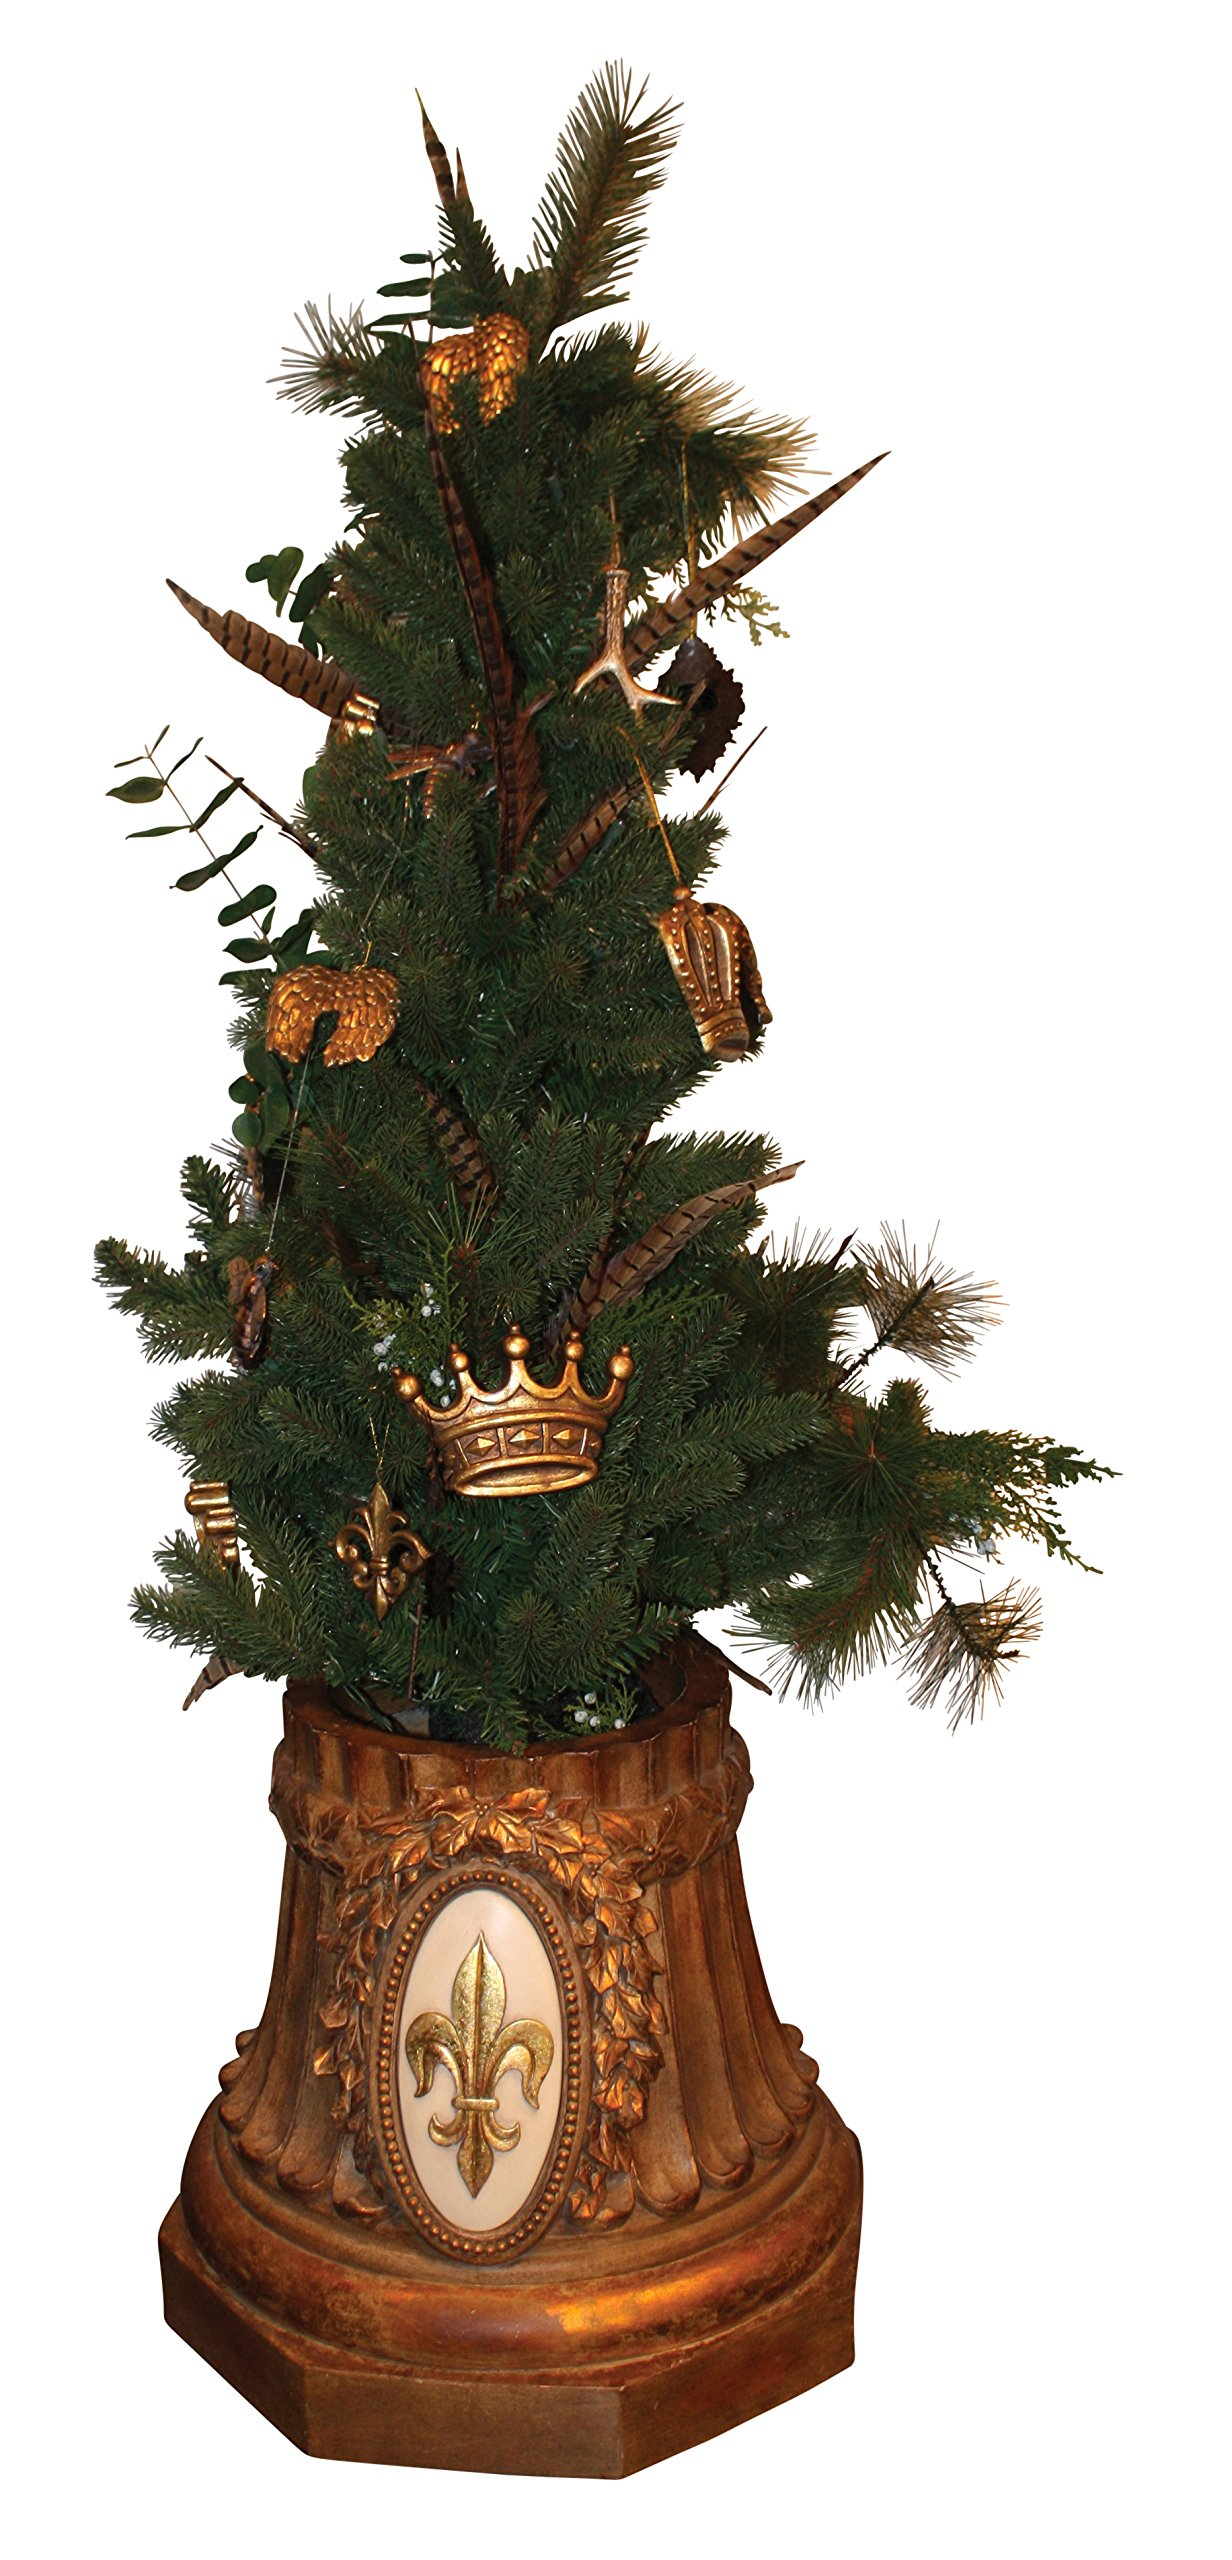 Ornate Gold Monogrammed Tree Holder | Personalized Christmas Xmas Urn Stand by My Swanky Home (Image #2)